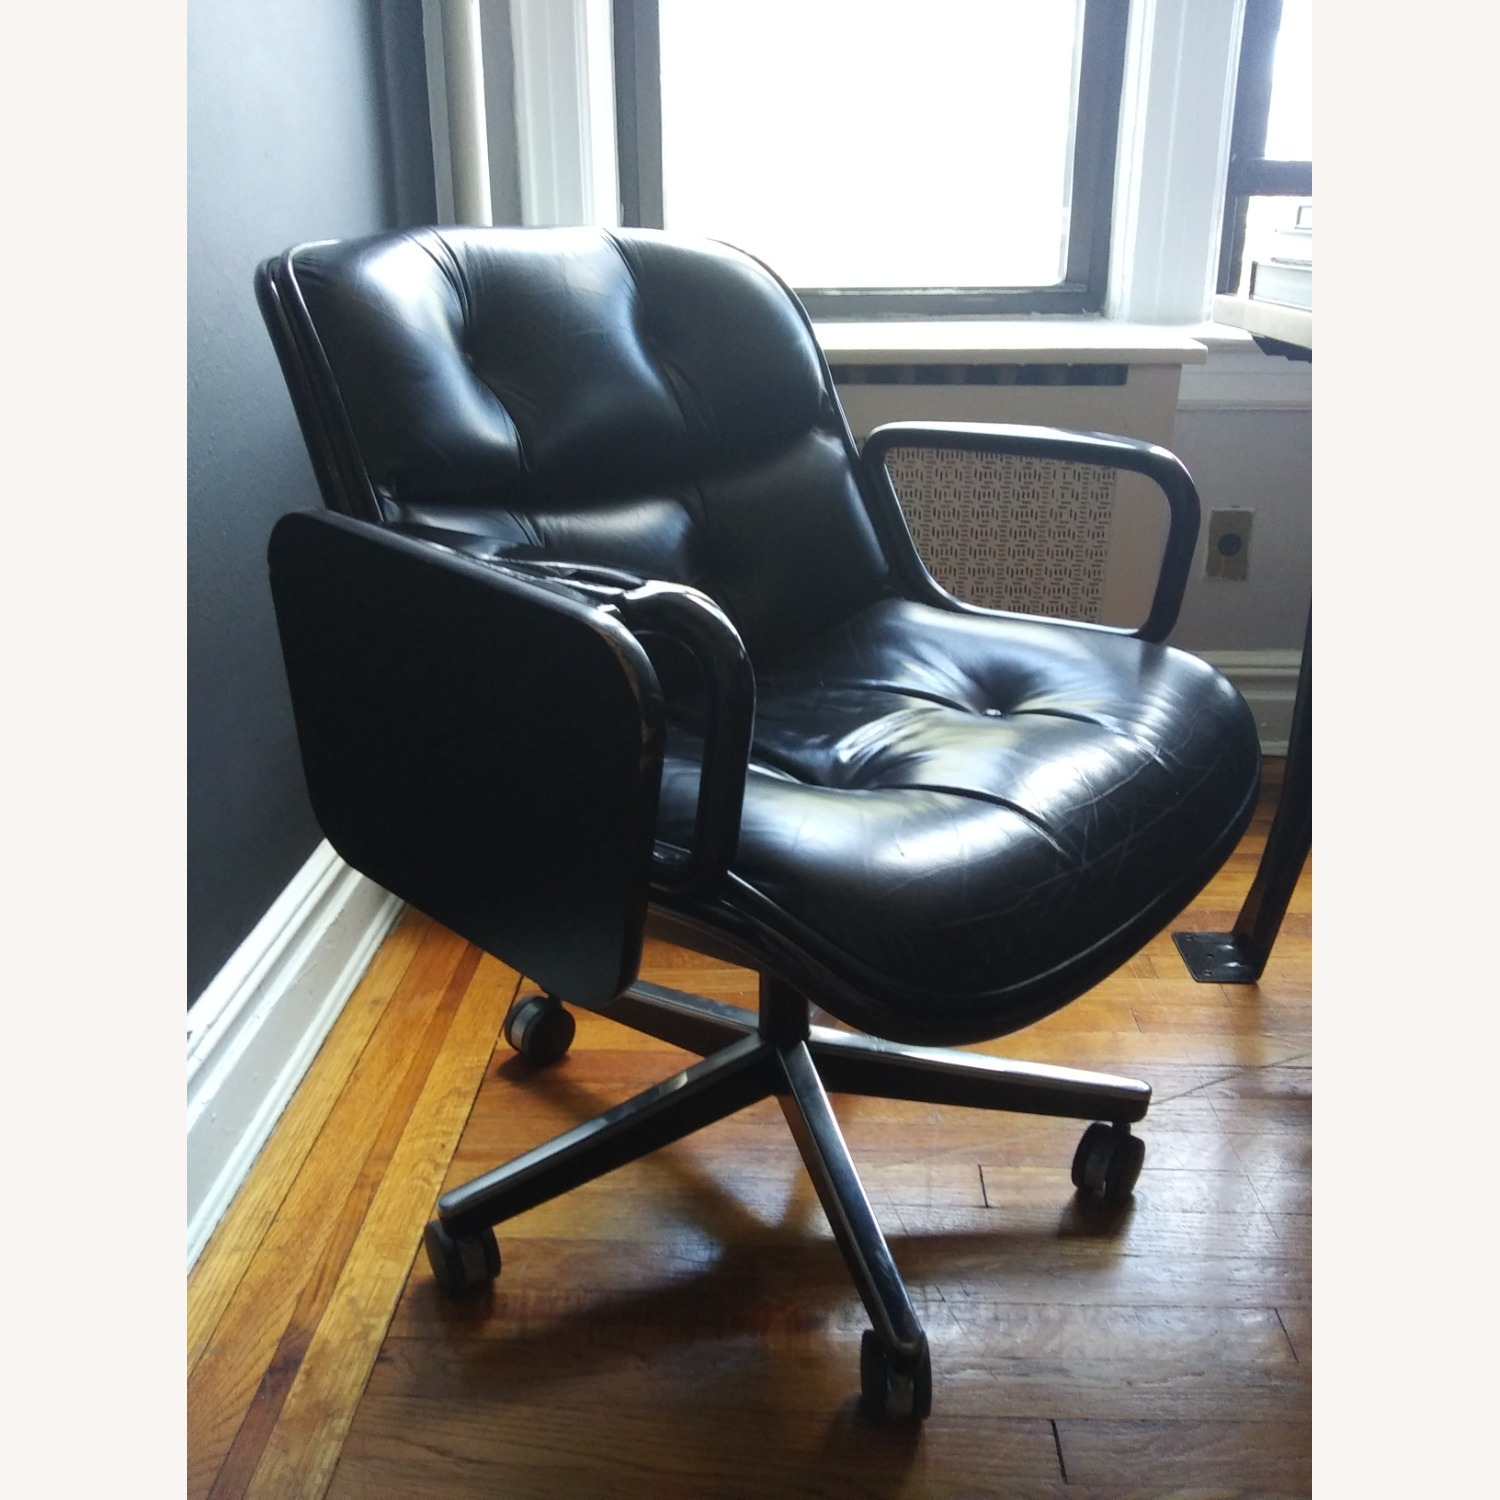 Knoll Swanky Pollock Vintage Office Chair - image-3